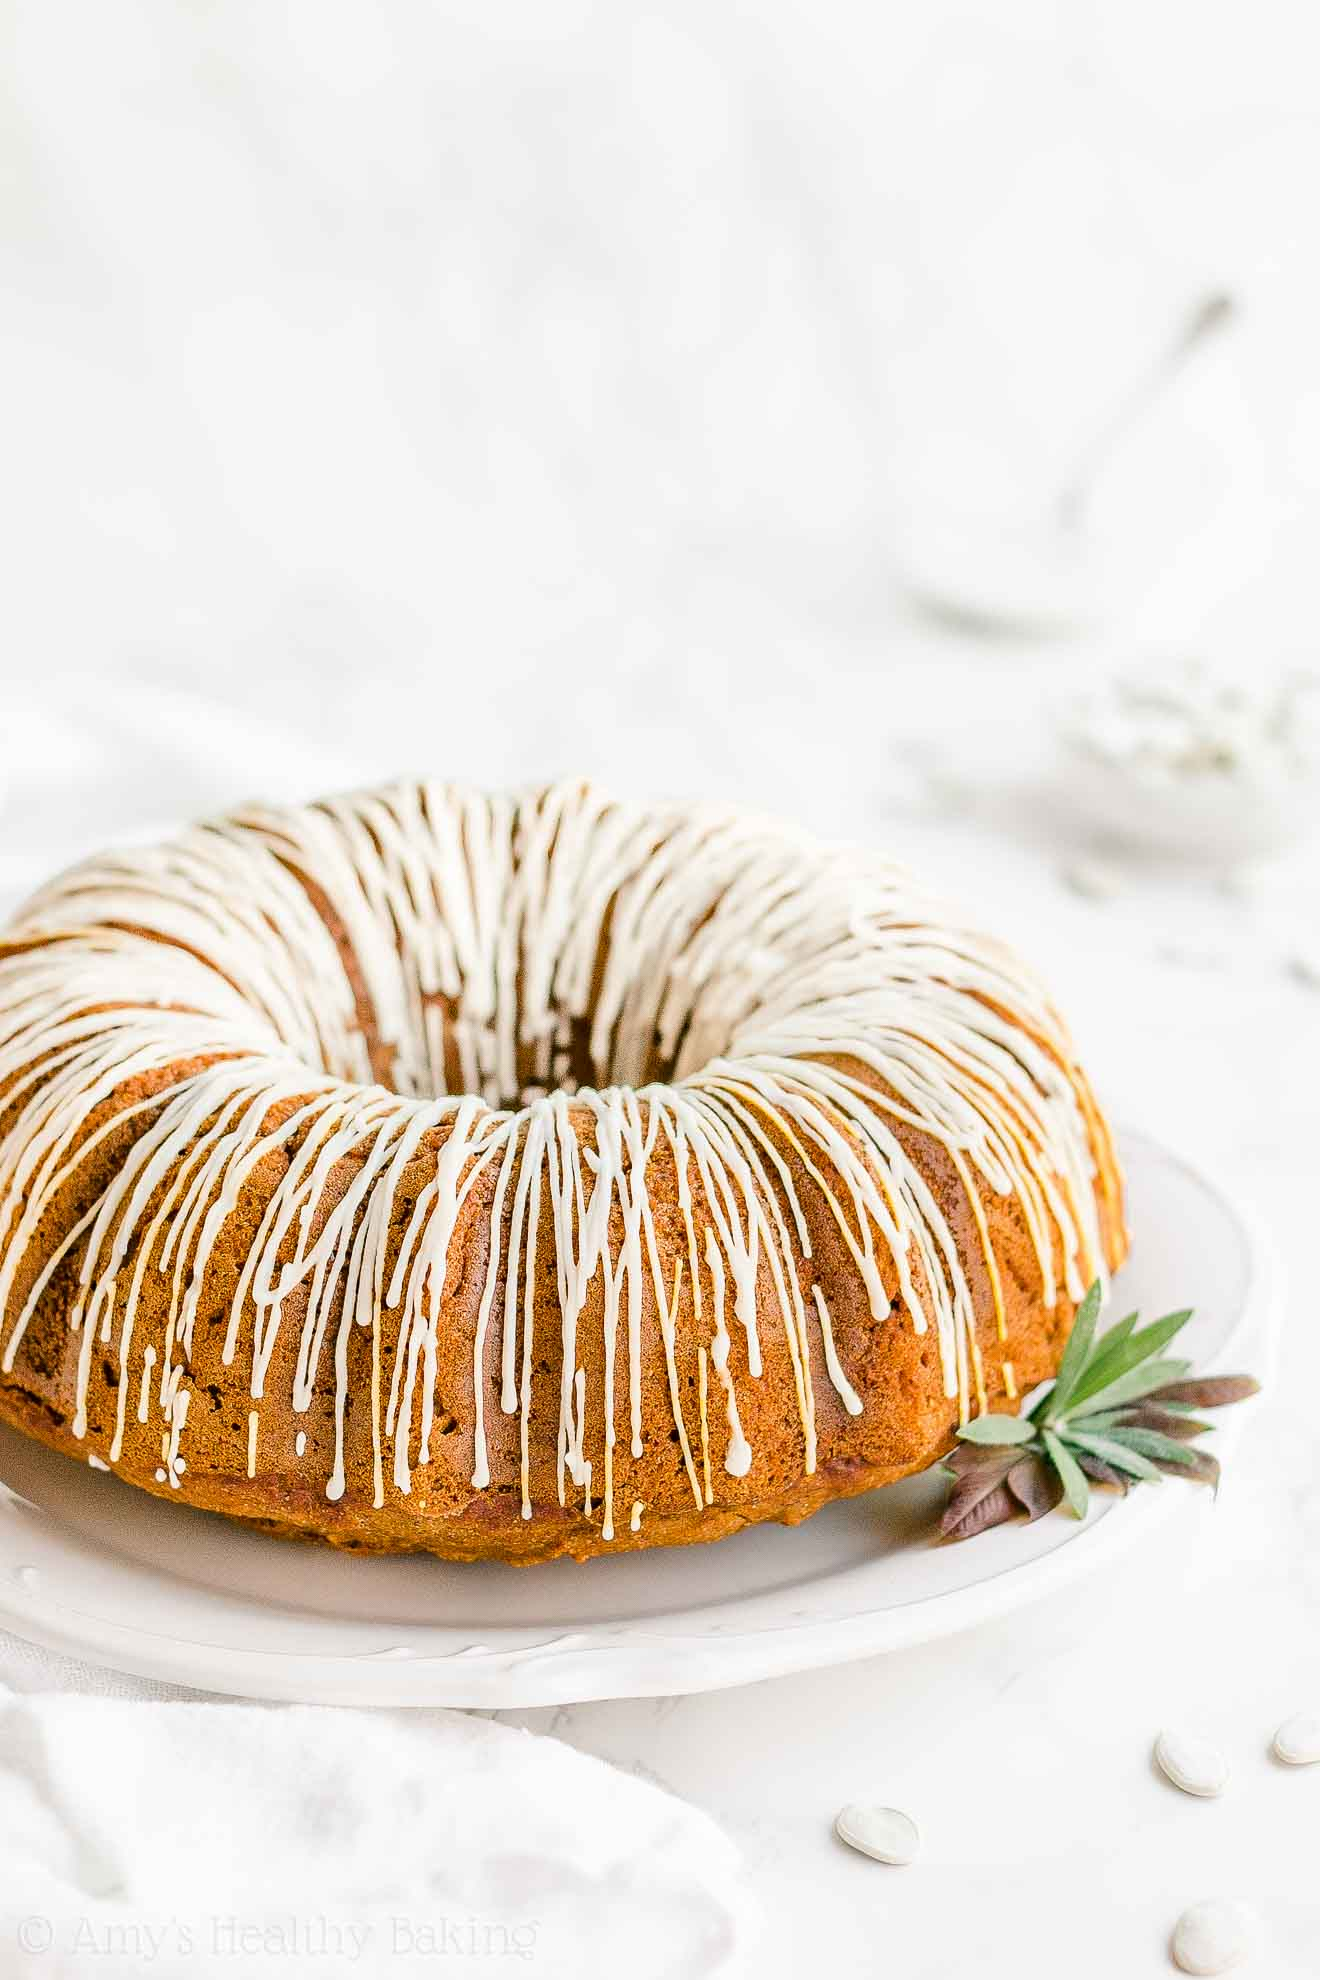 Moist Healthy Easy Gluten Free Sugar Free Pumpkin Bundt Cake